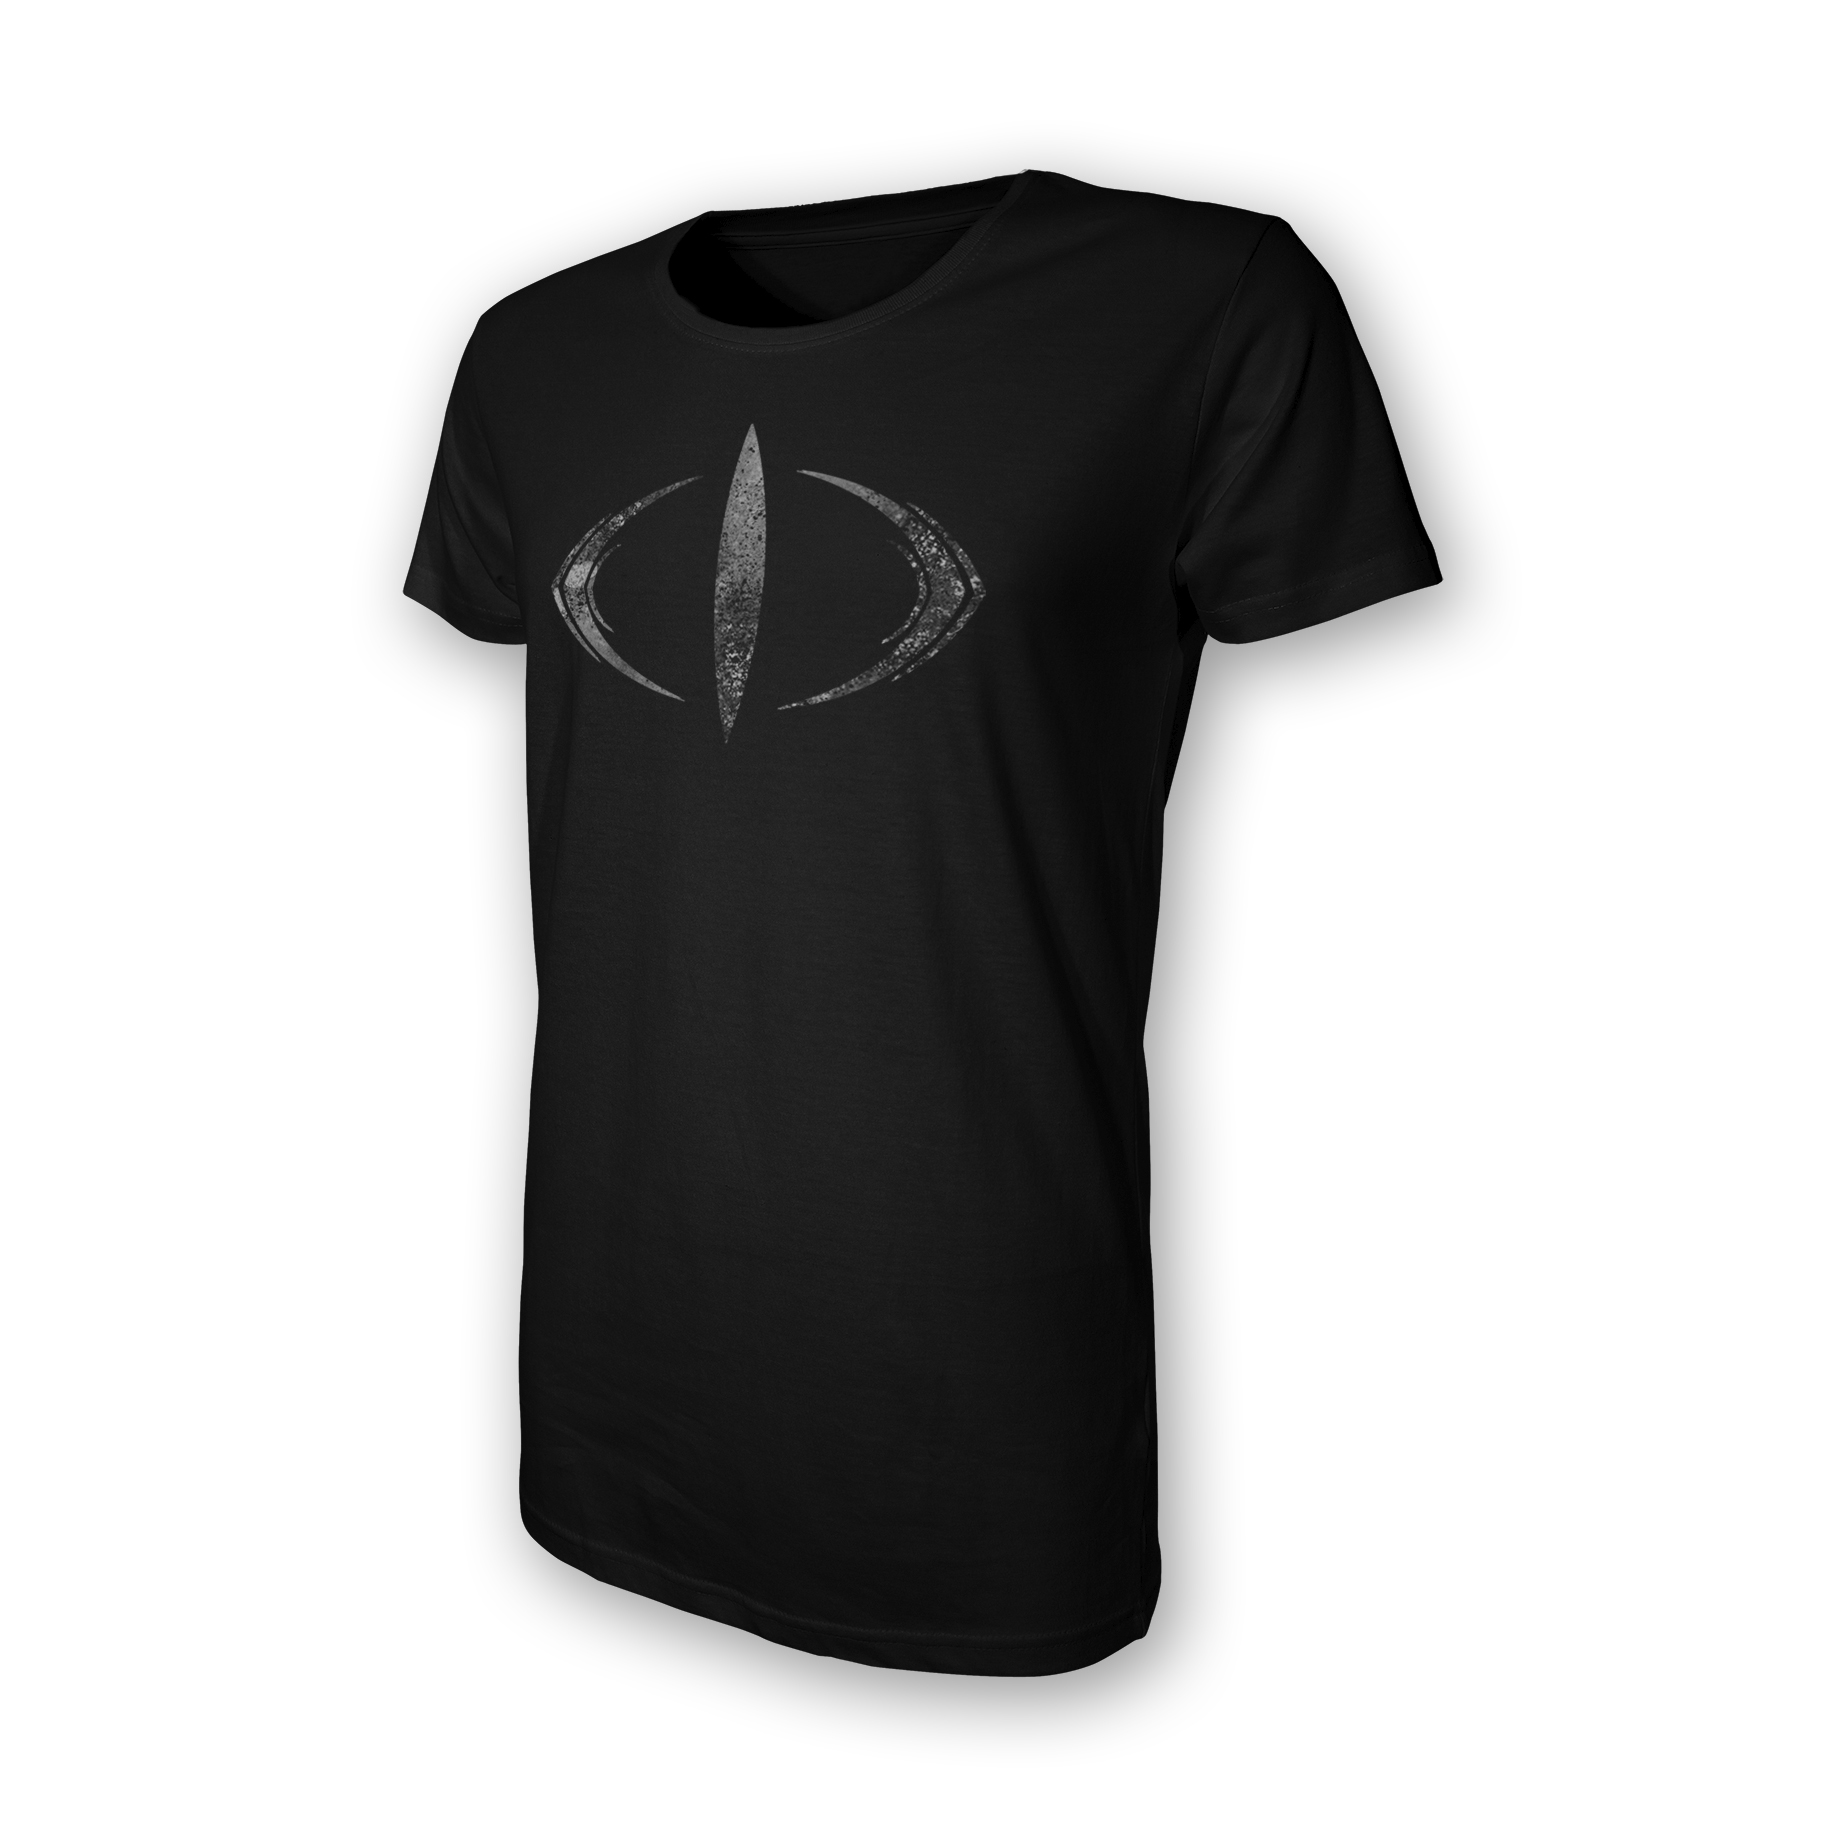 EYE LOGO T-SHIRT